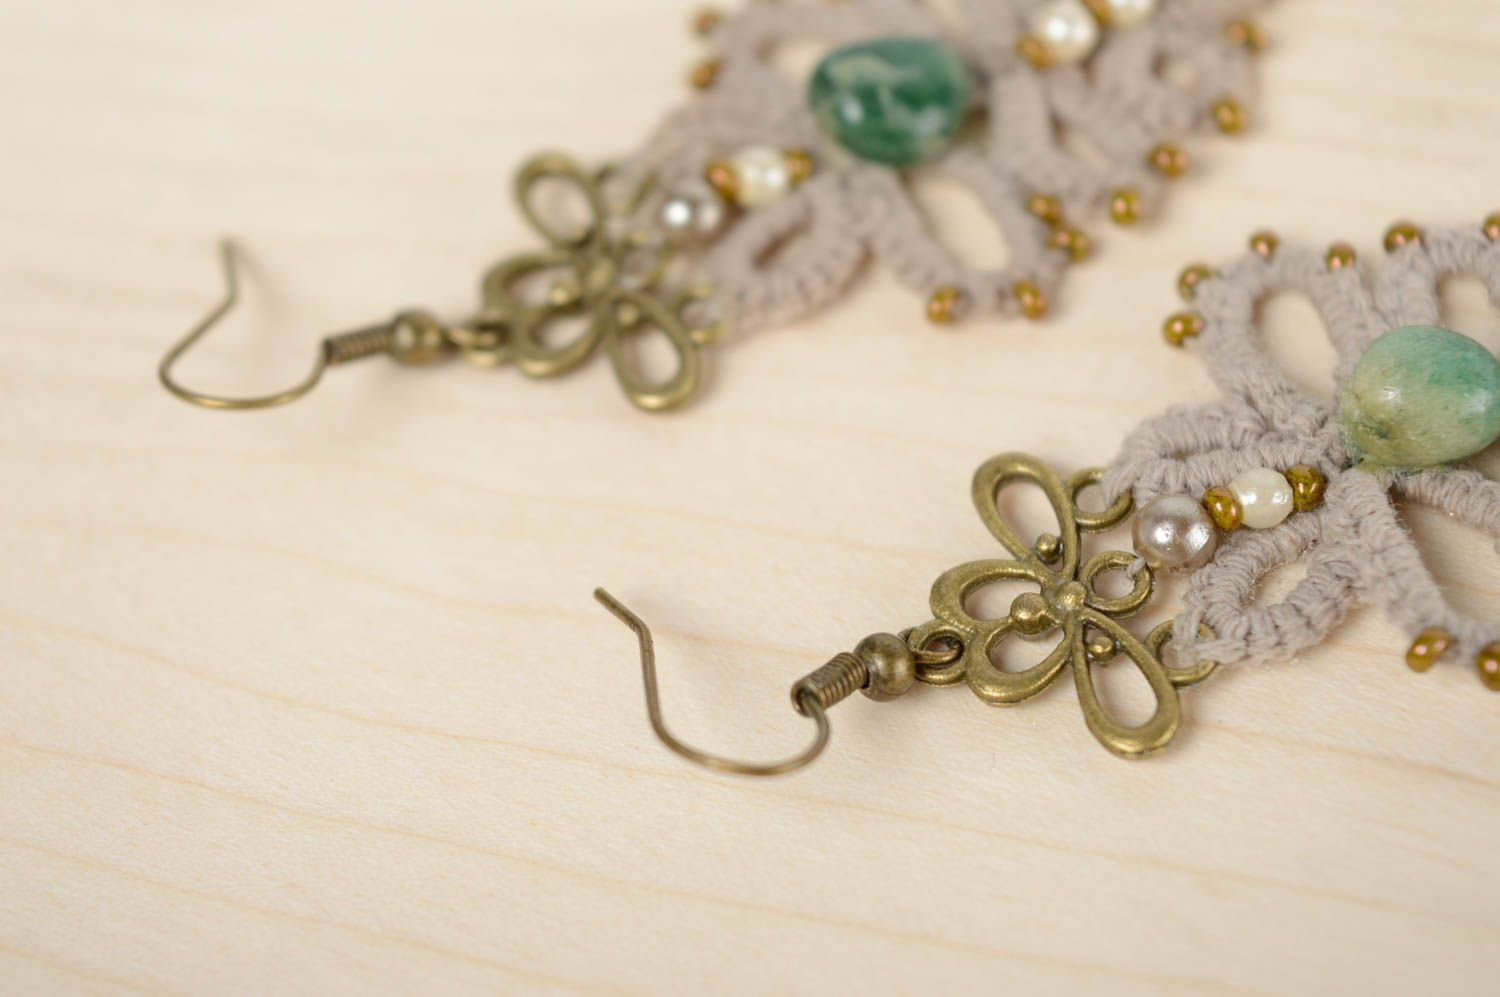 Crochet tatting earrings with natural stone photo 5